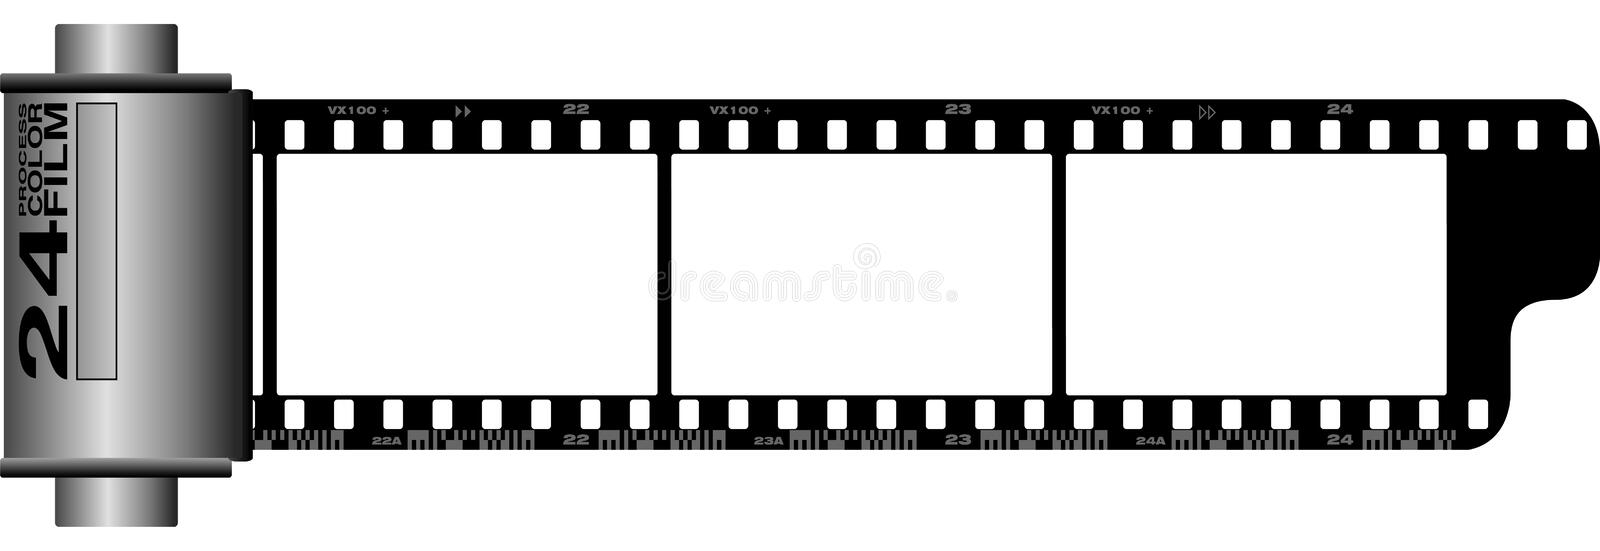 35 mm film roll royalty free stock photos